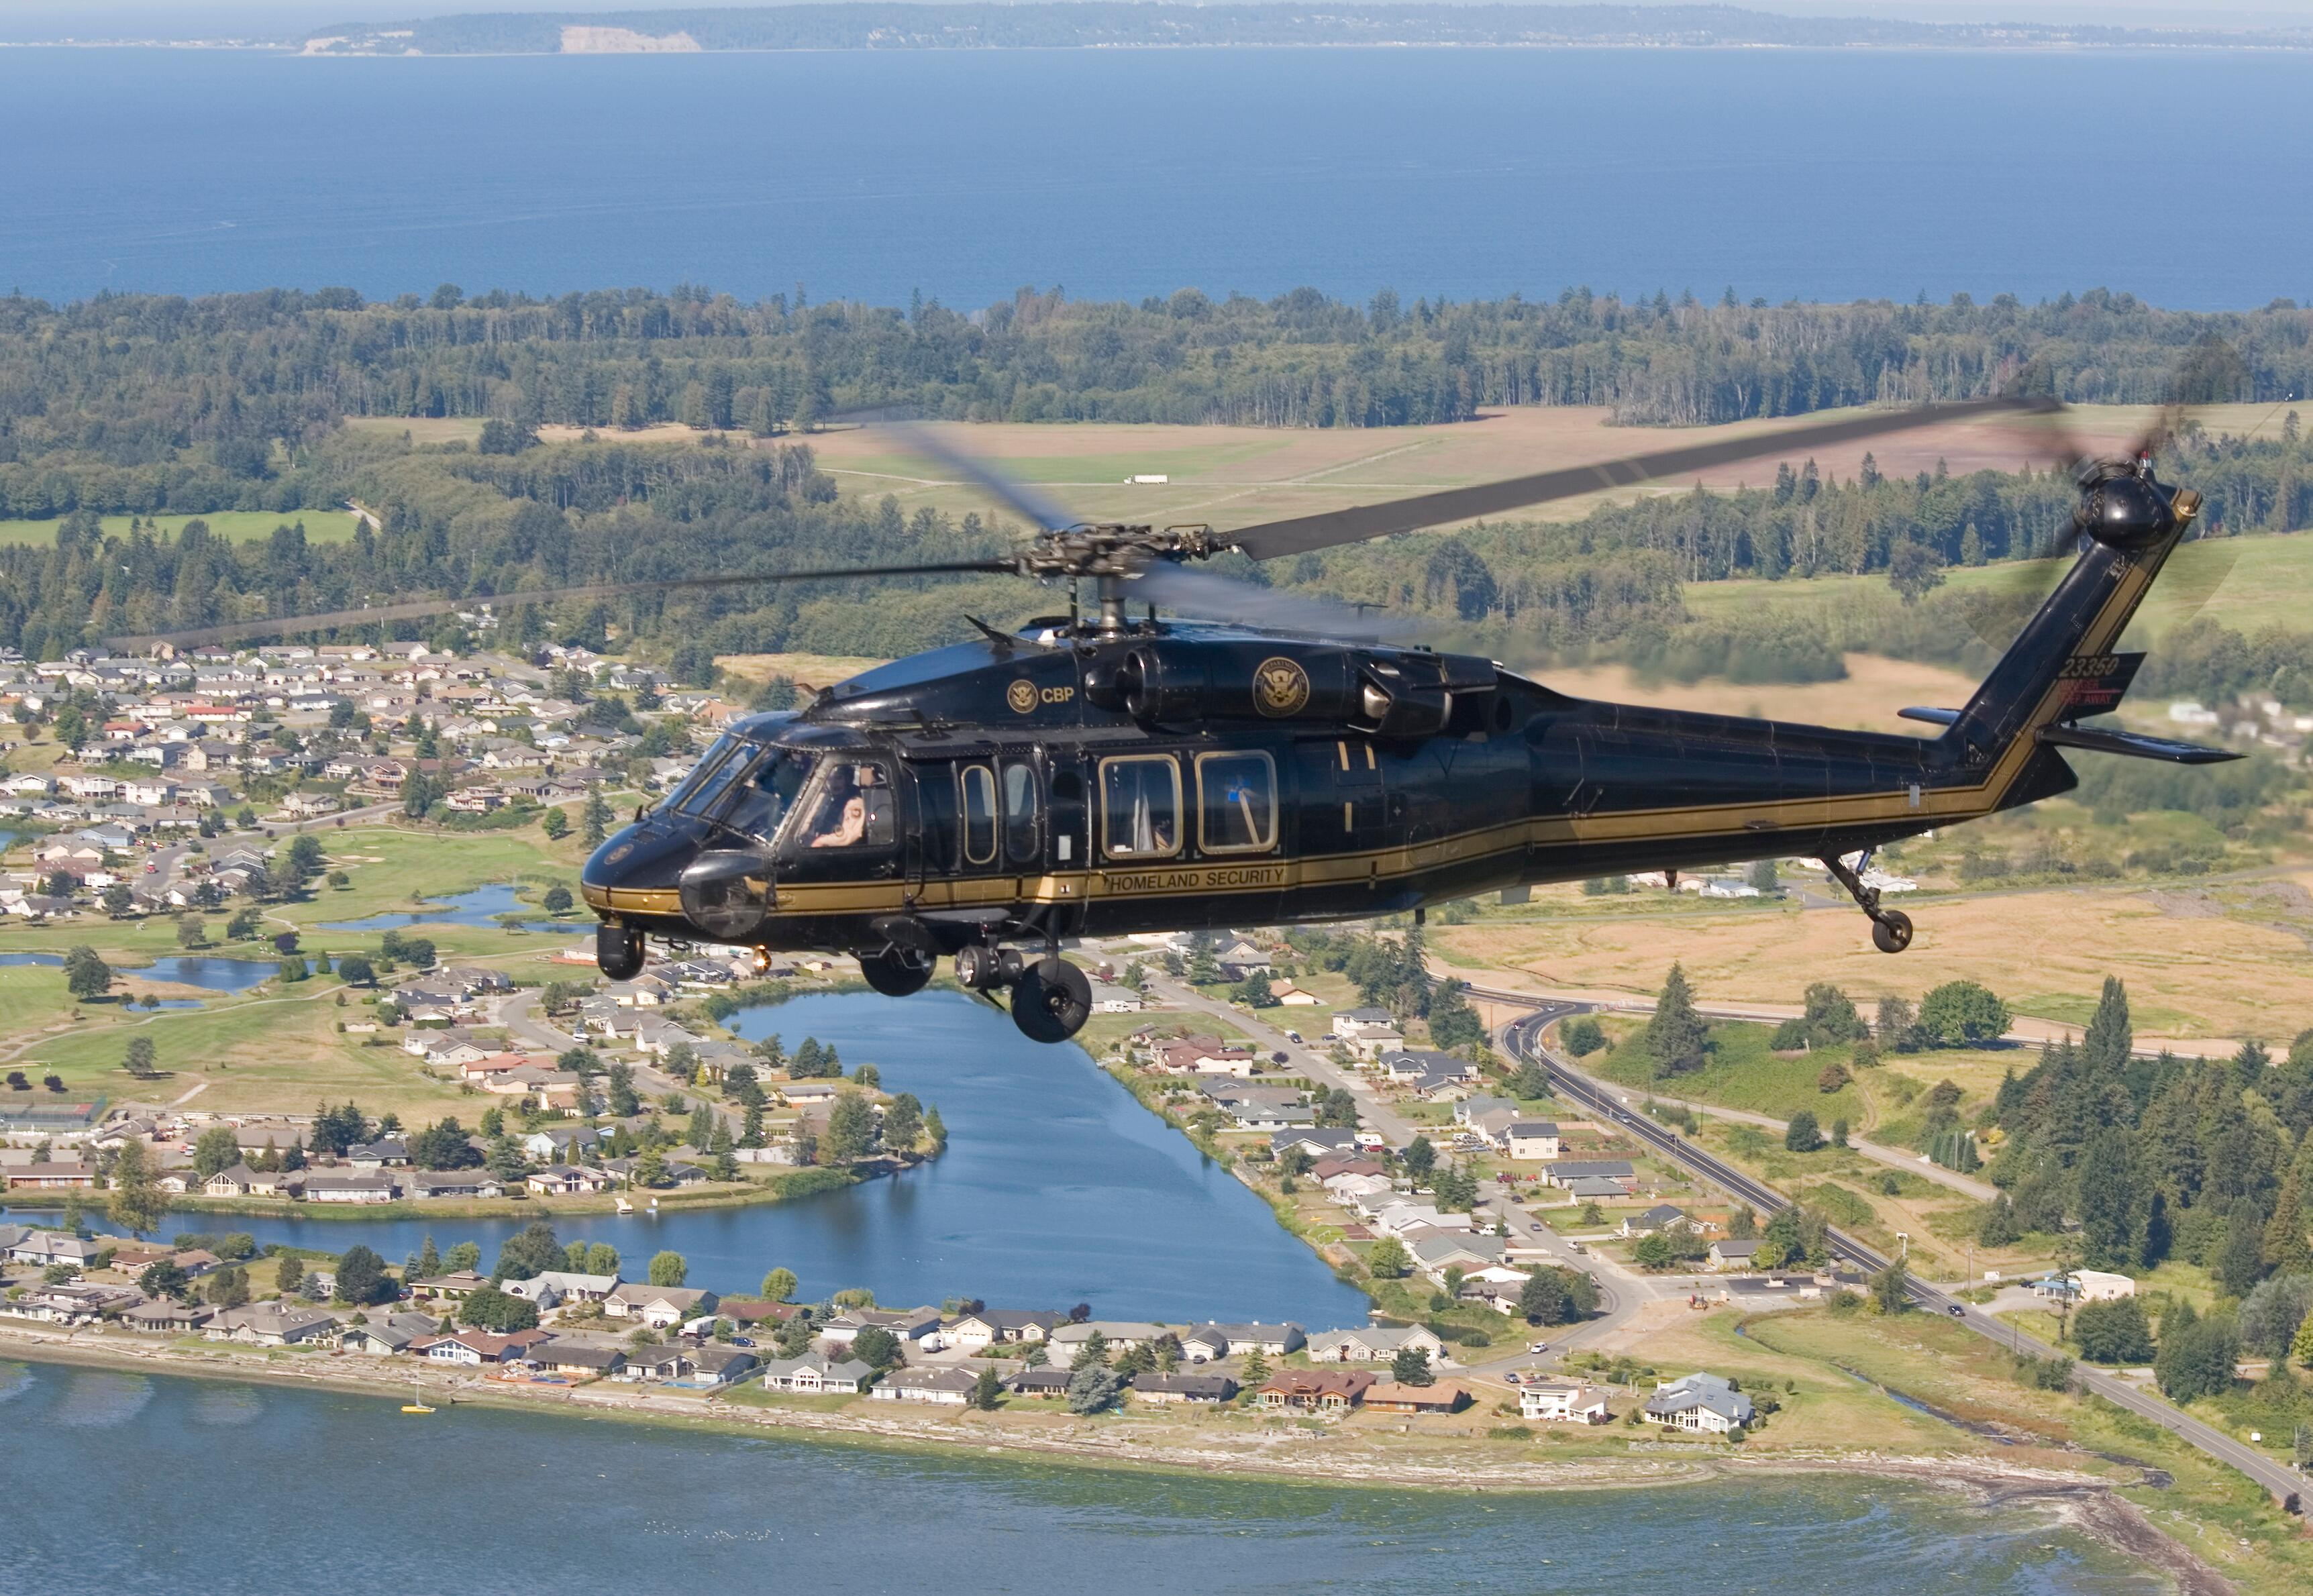 A Customs and Border Protection UH-60 Black Hawk patrols along the northwest border of the U.S.